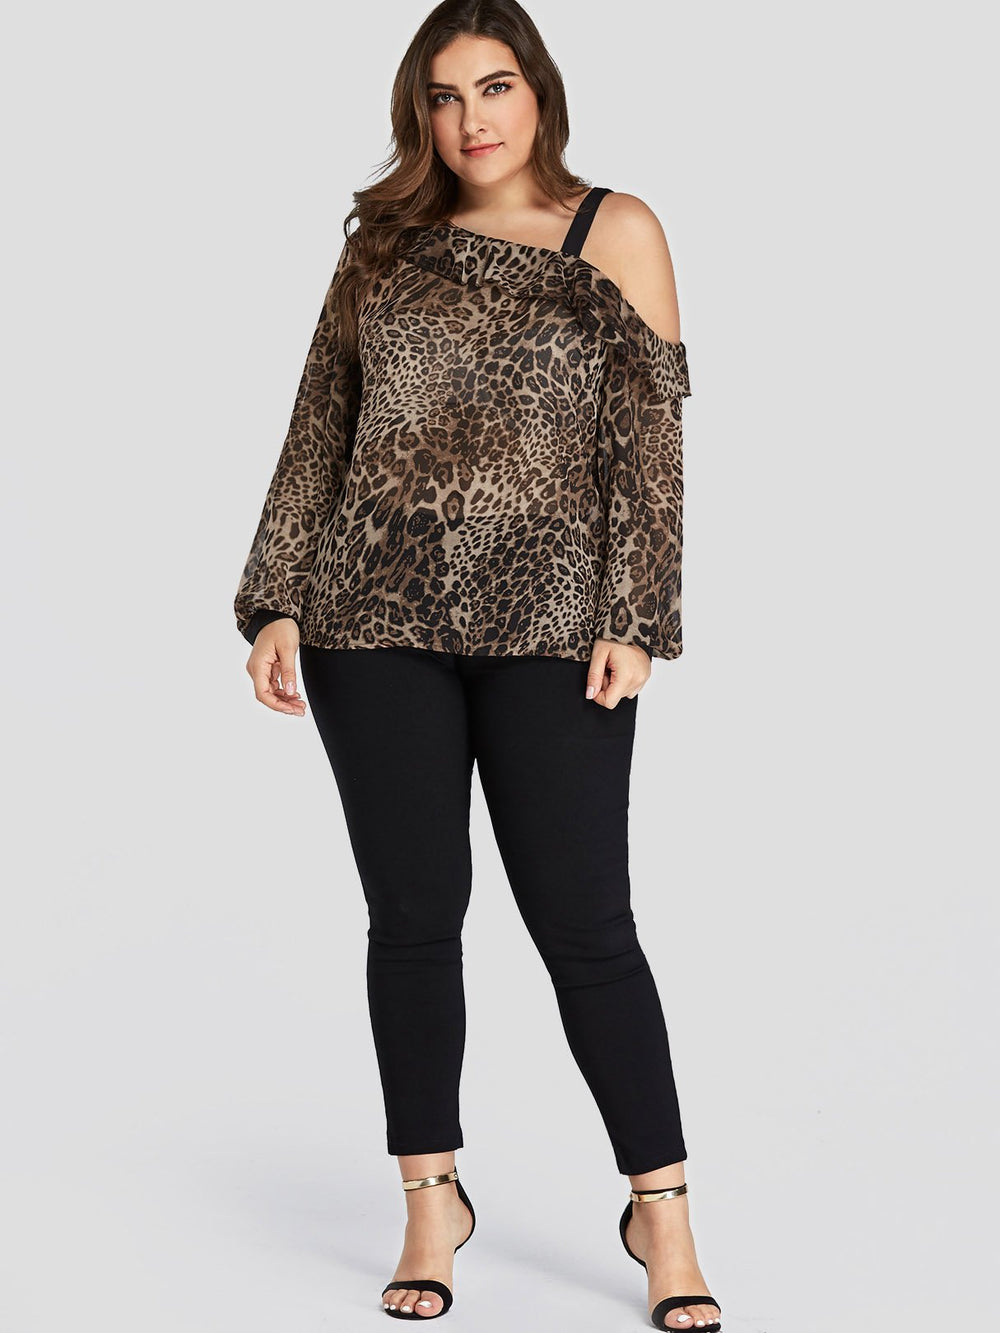 Womens Long Sleeve Plus Size Tops